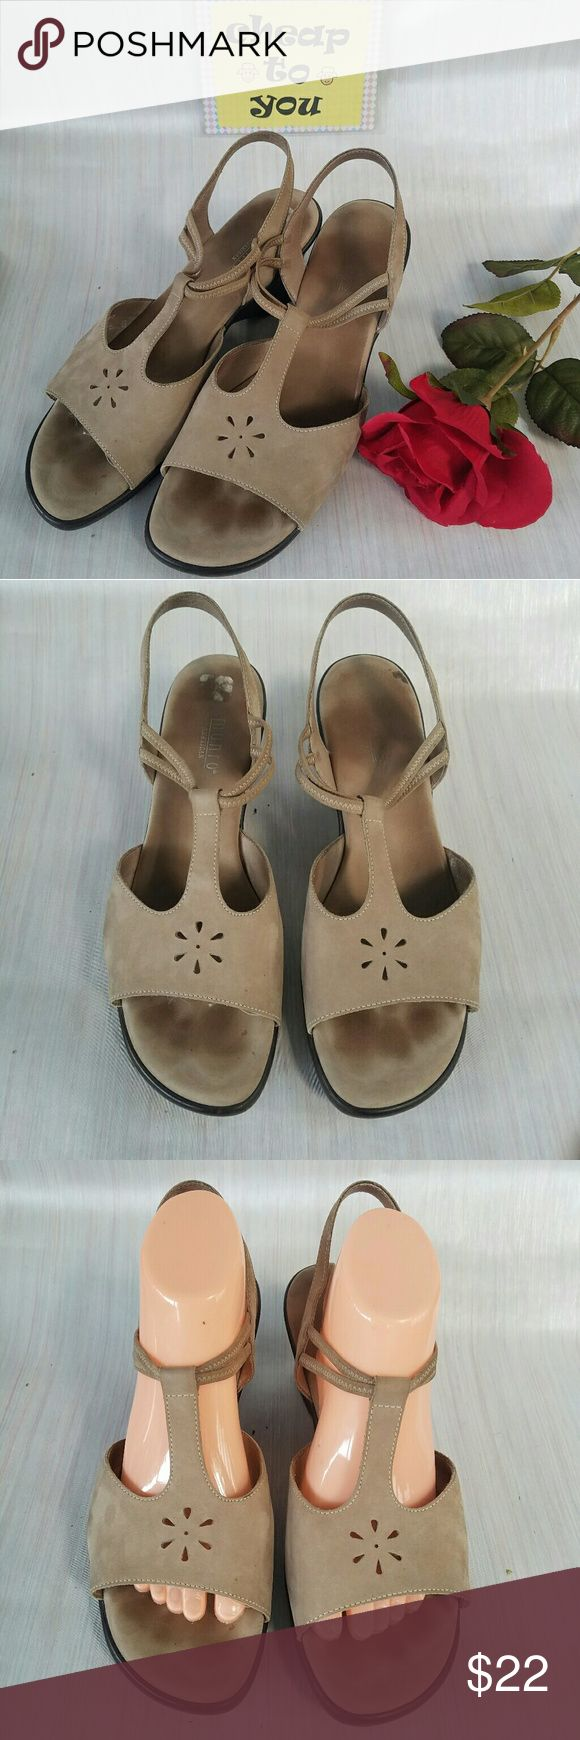 """MUNRO AMERICAN WEDGES. SIZE 10M Walking wedge. Gently worn. With signs of wear in insole. 3"""" wedge. Padded insole. Made in USA. Munro Shoes Wedges"""